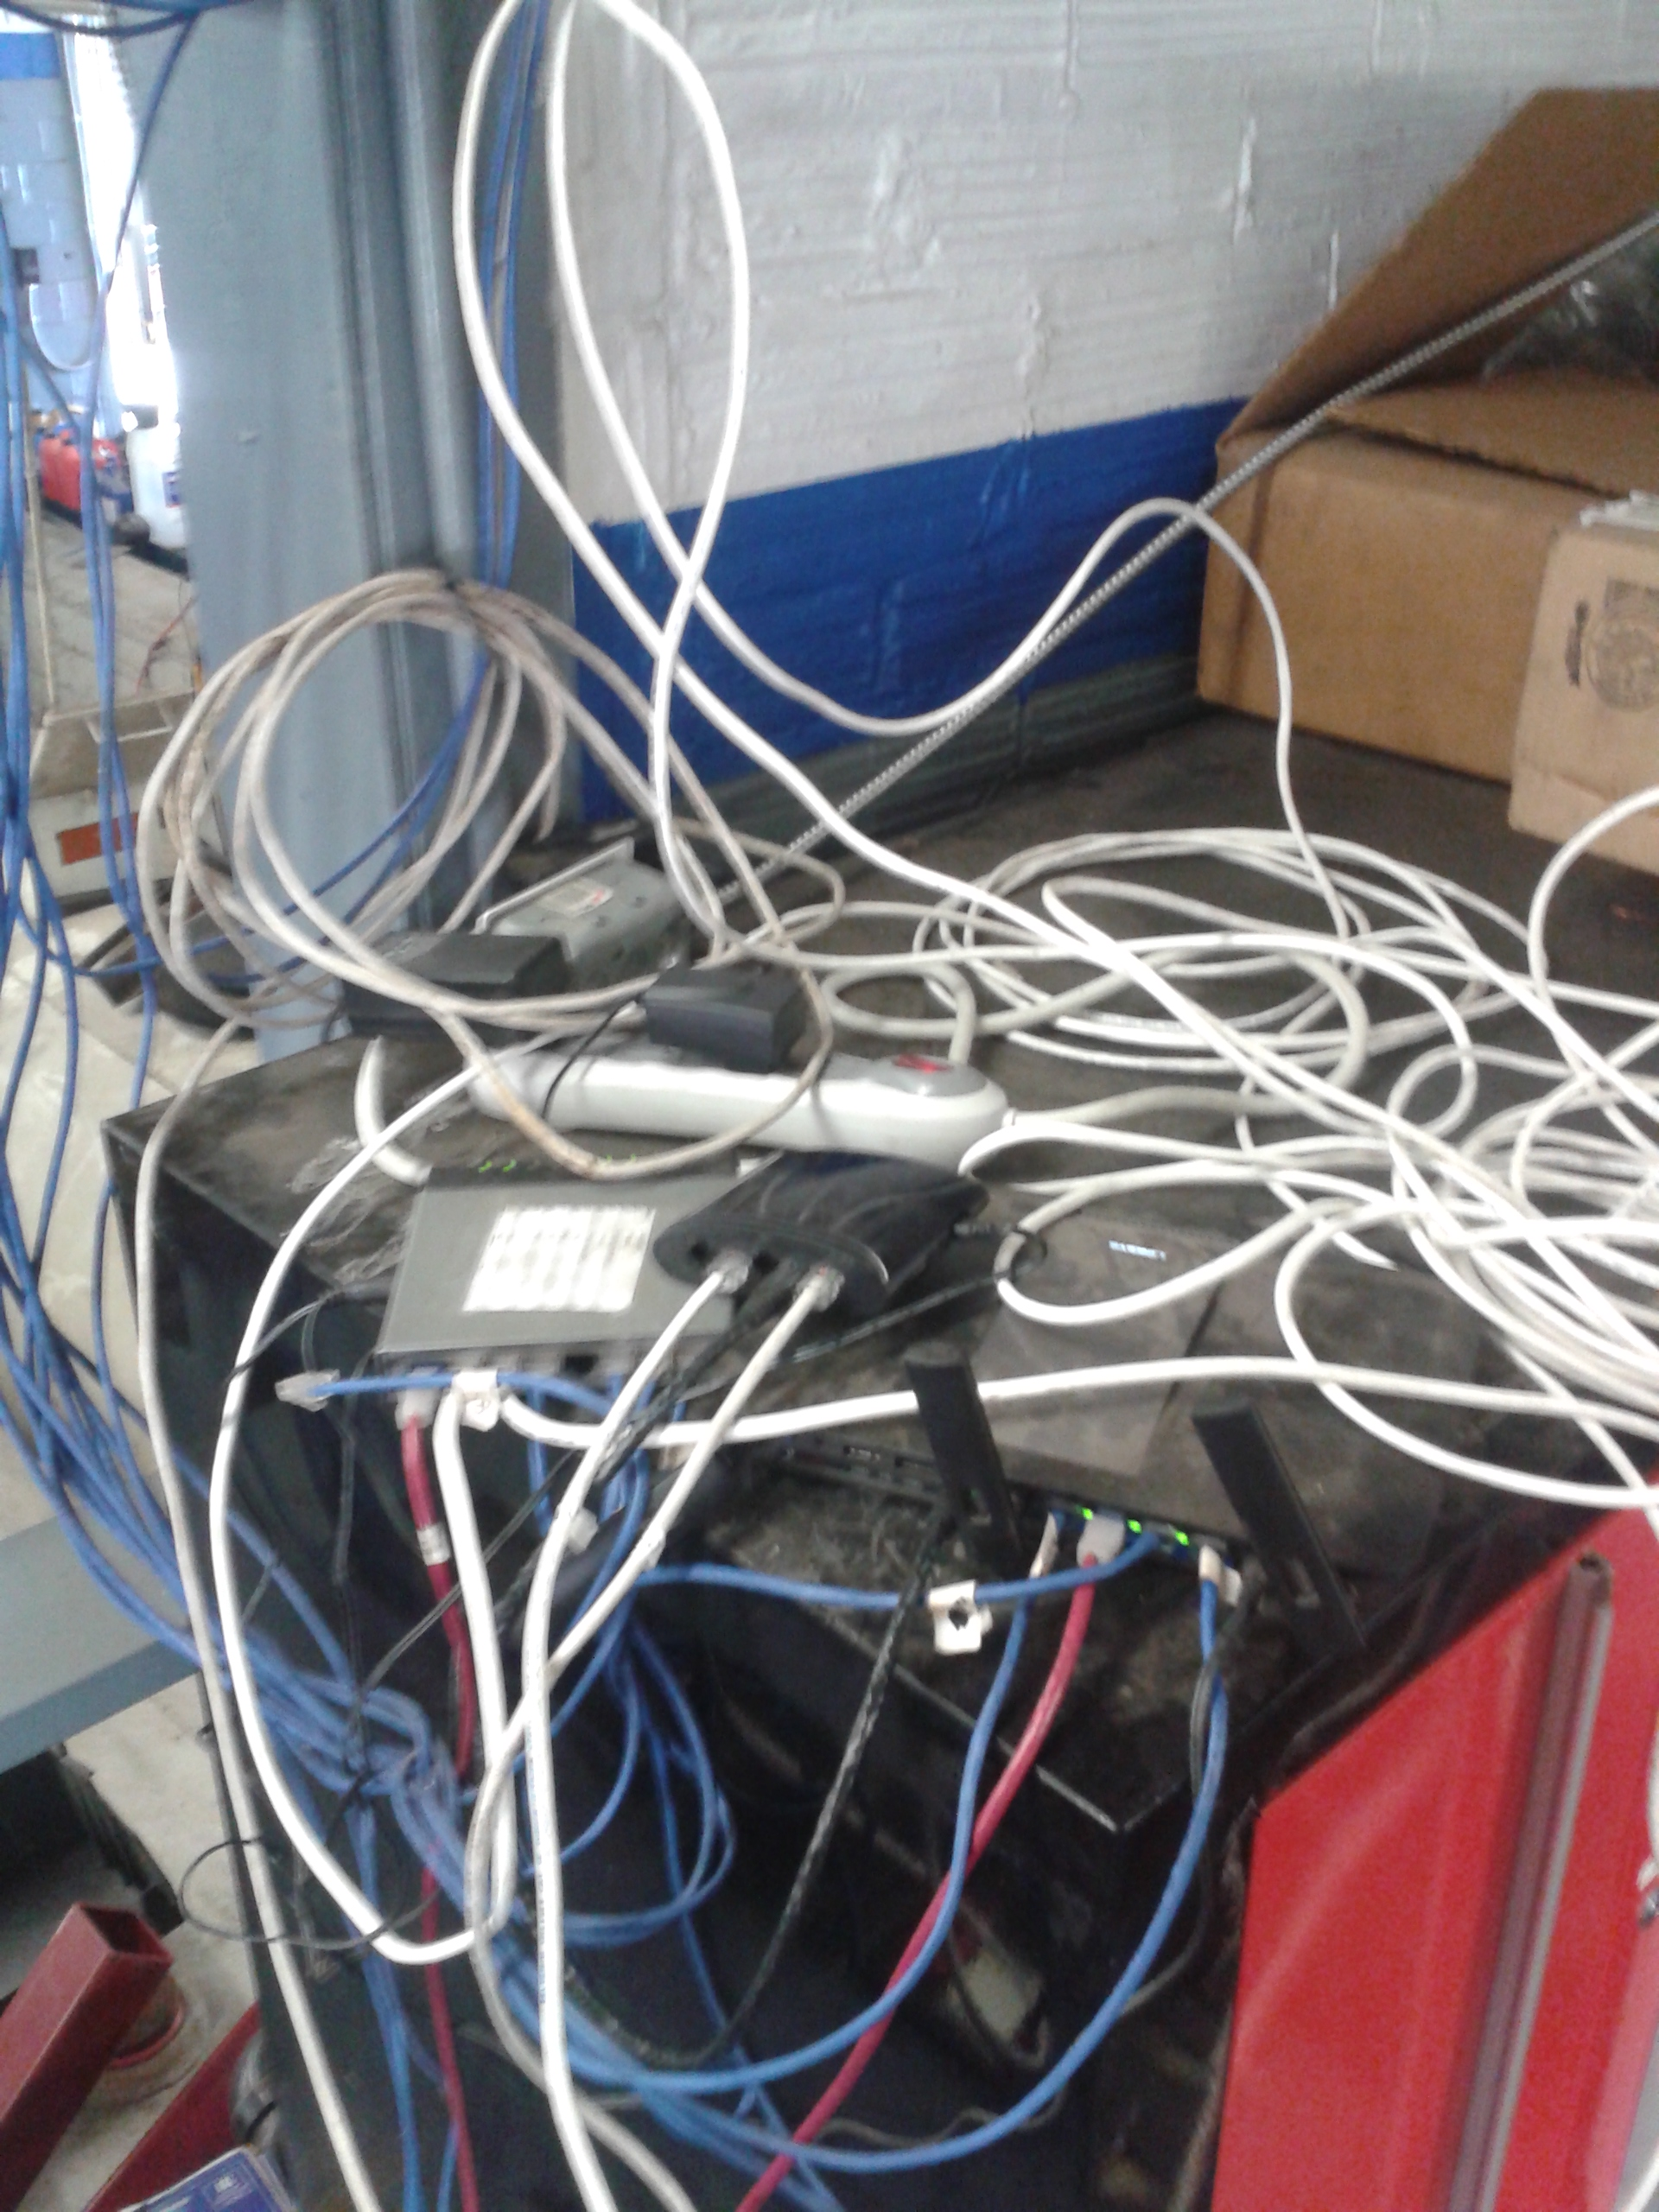 network mess